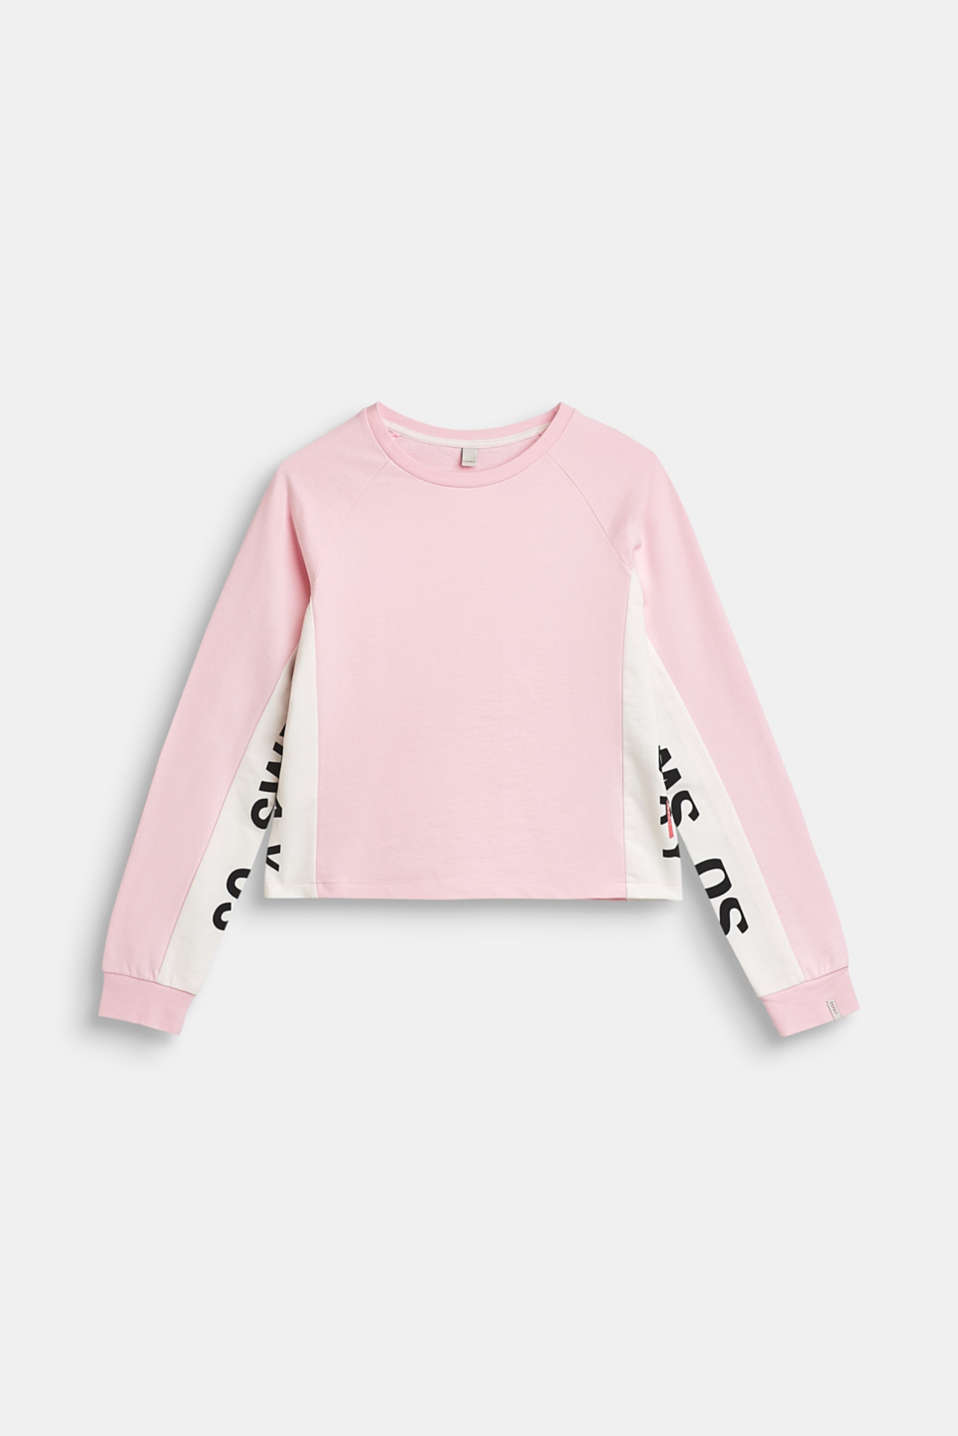 Esprit - Sweatshirt with statement print, 100% cotton